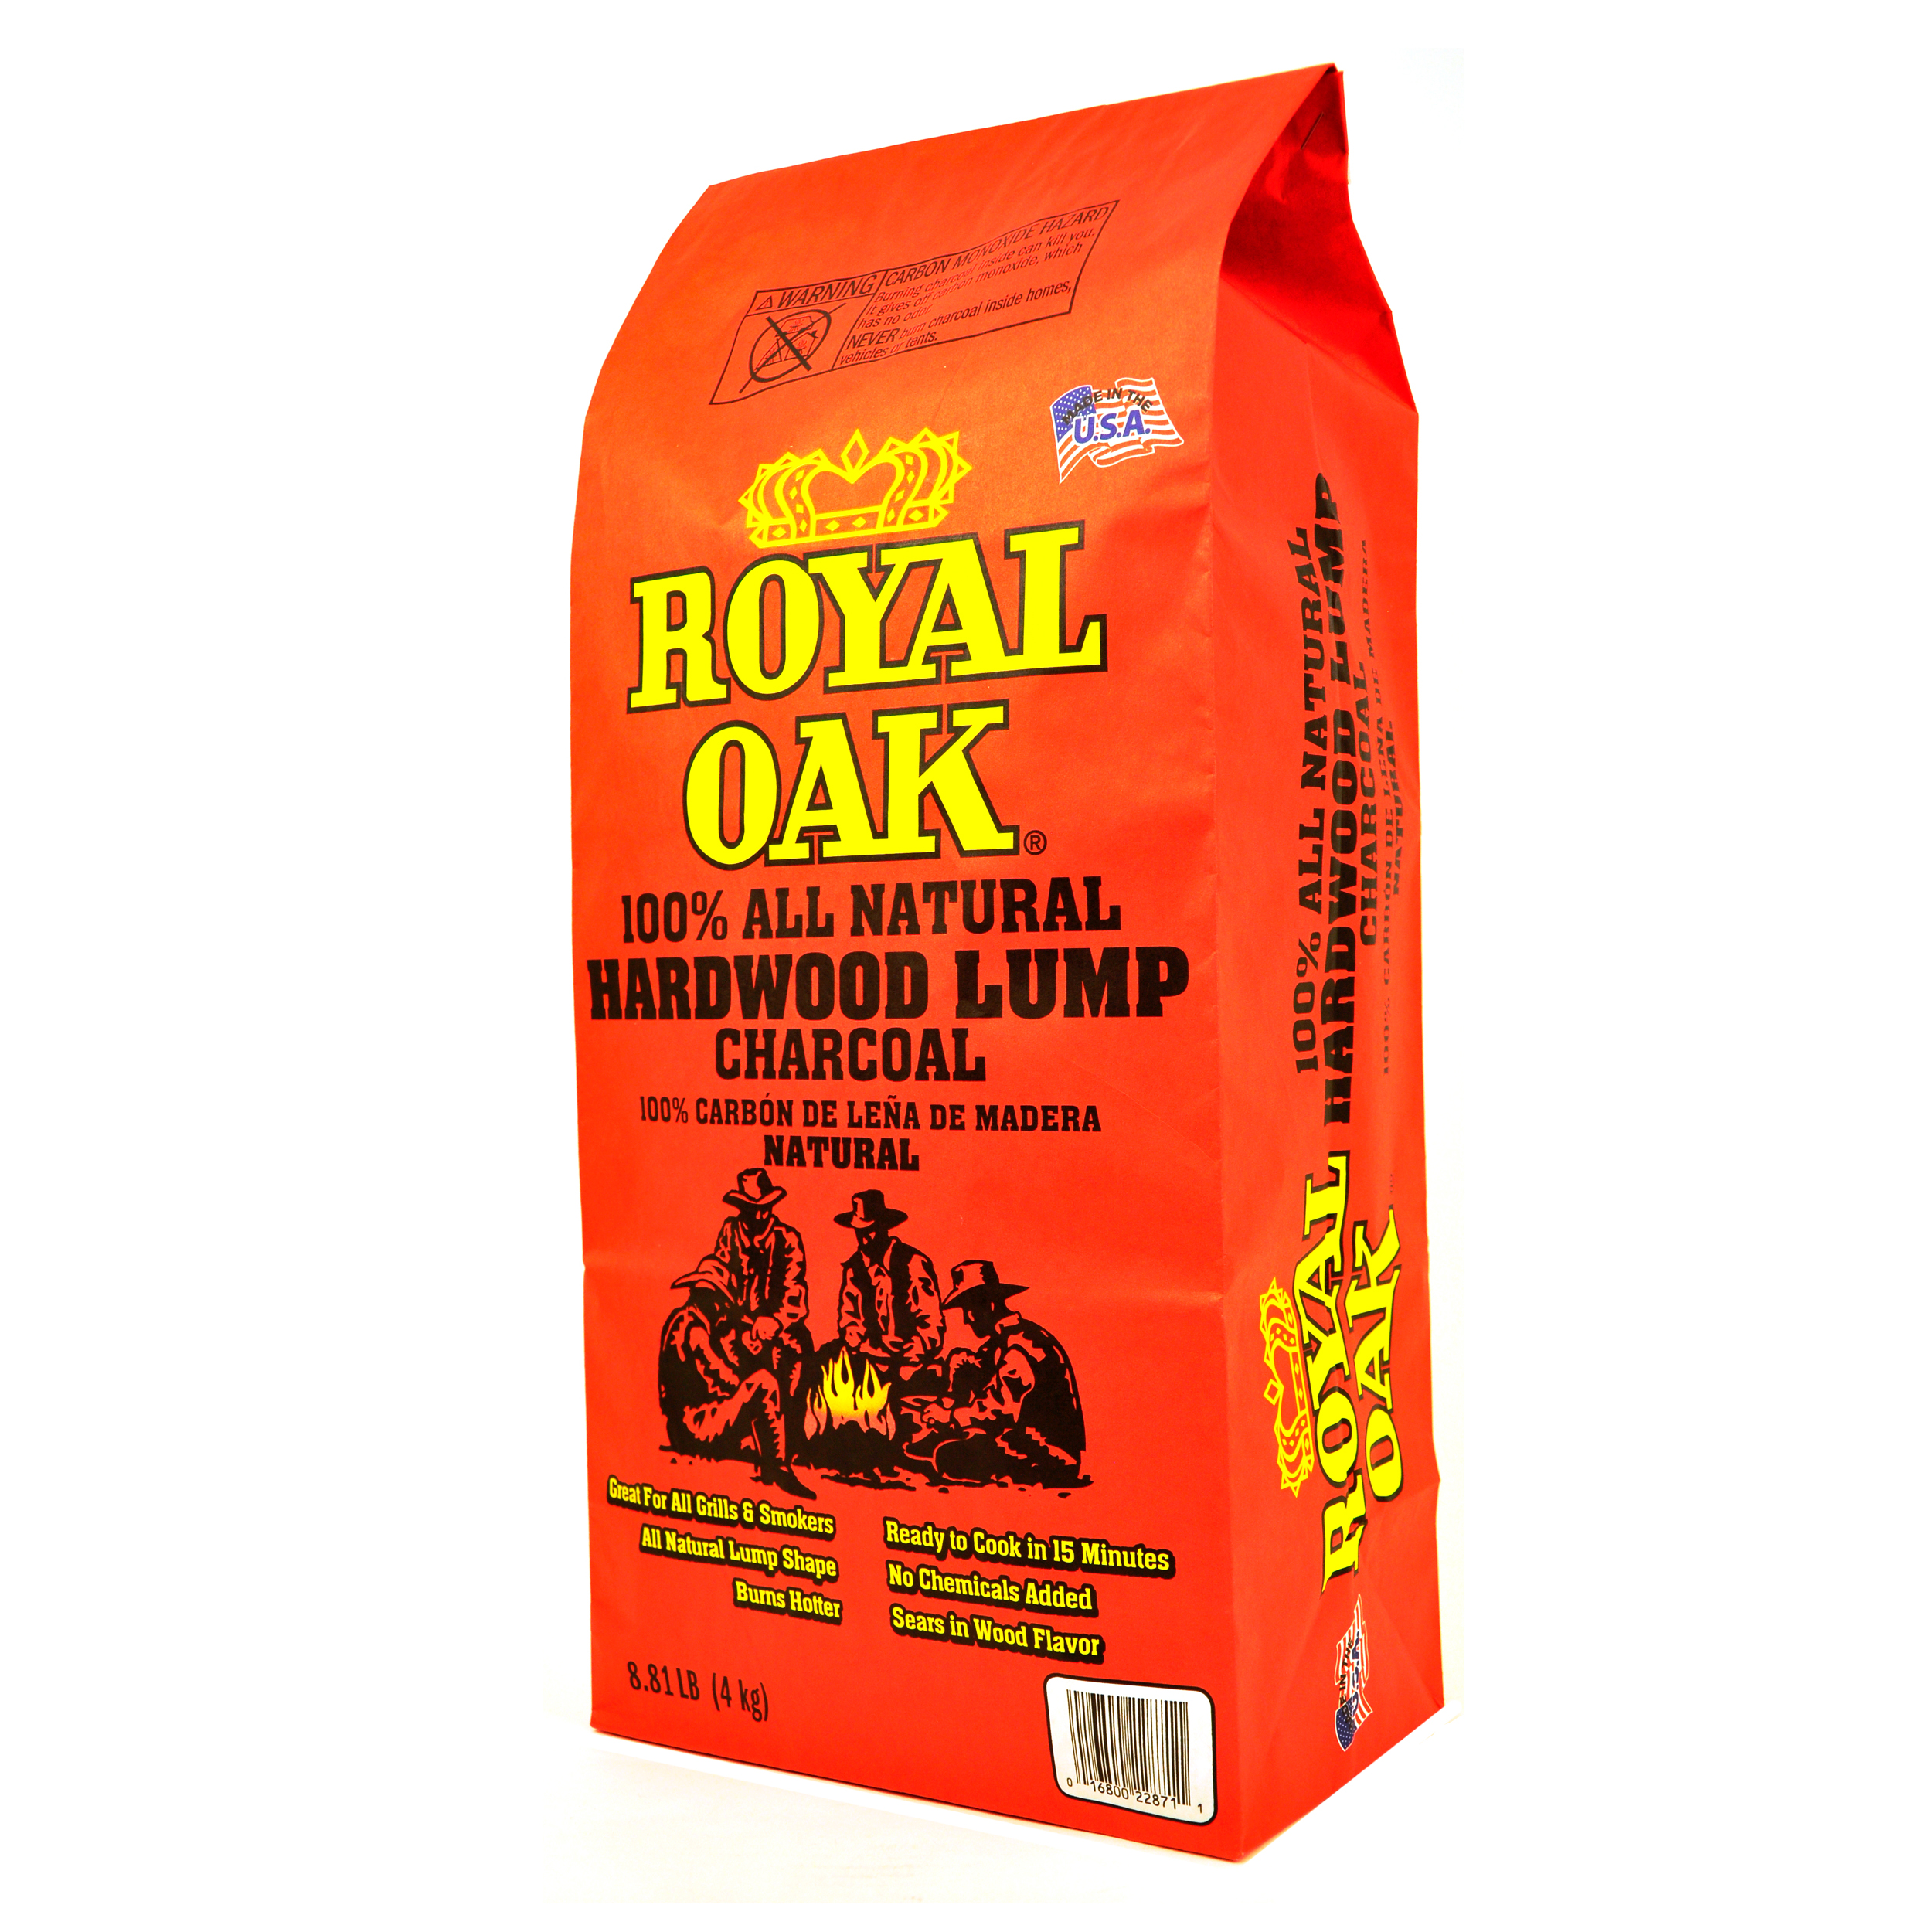 Royal Oak Natural Lump Charcoal, 8.8 lb Bag